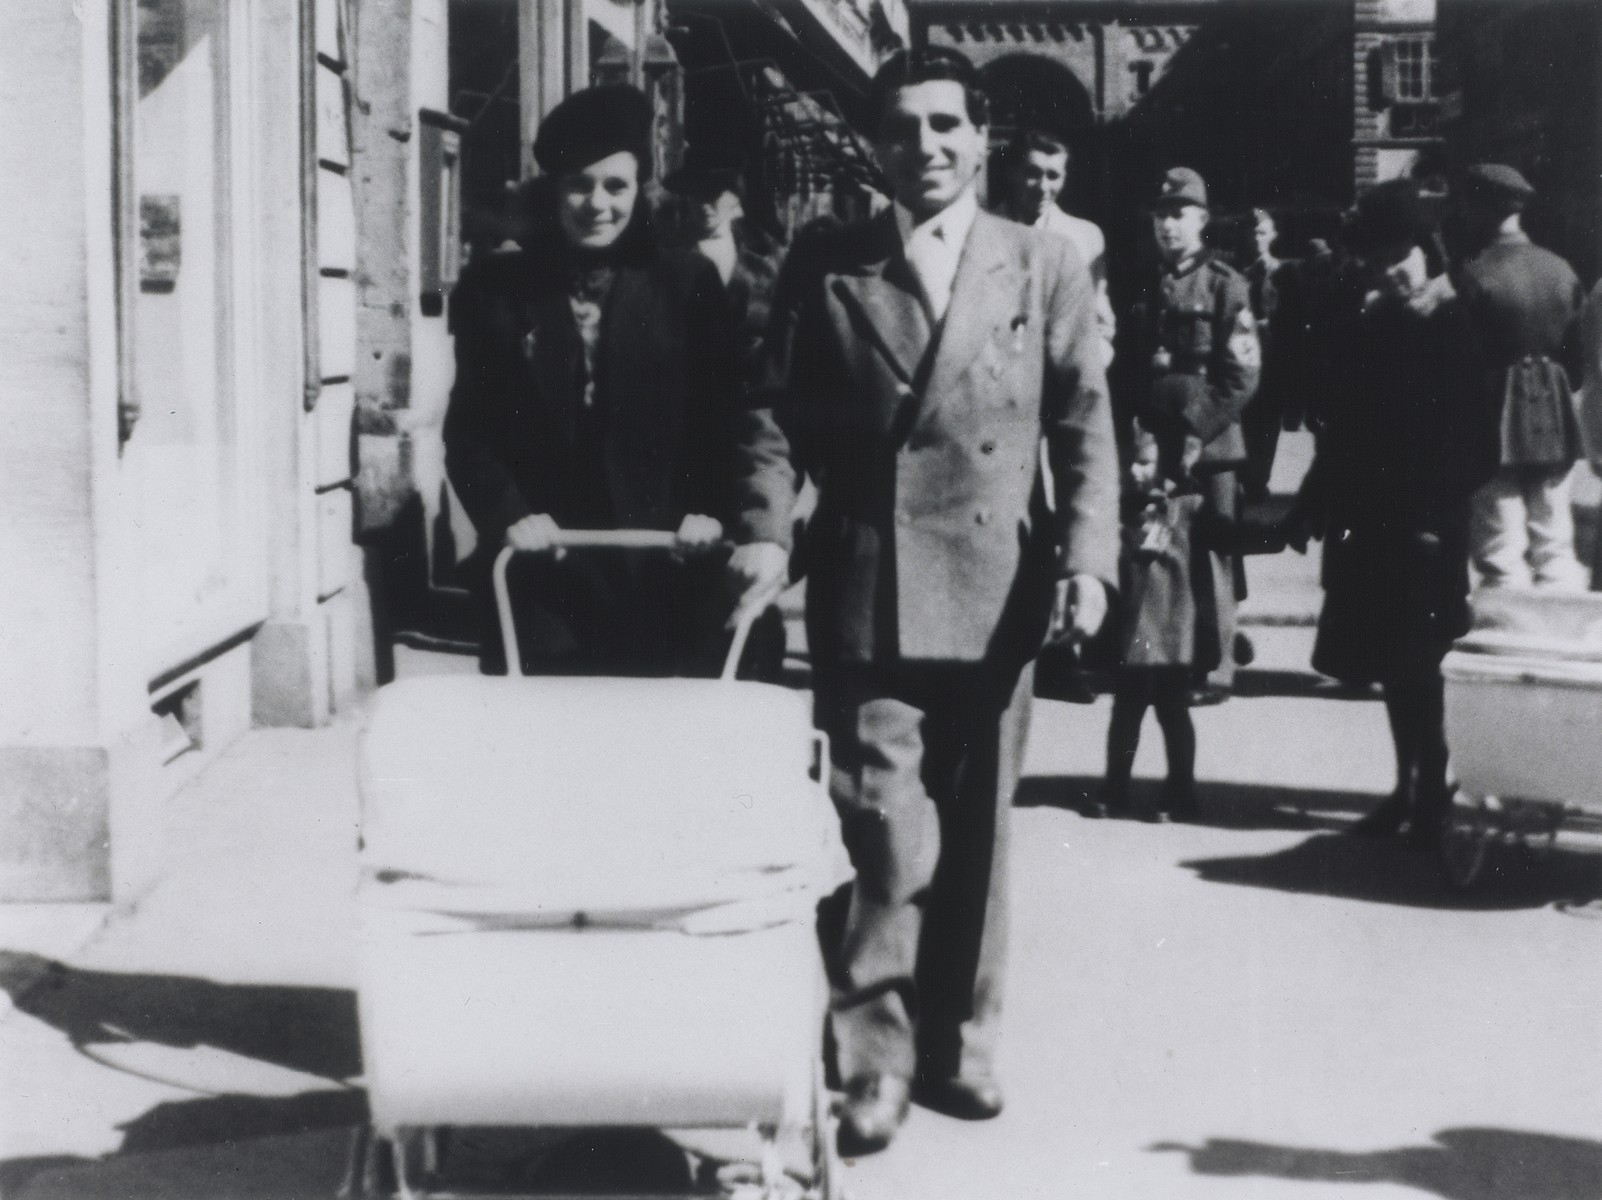 Gabriel and Theresia Reinhardt, a Sinti (Gypsy) couple, push their twin children, Rolanda and Rita, along the Domstrasse in Wuerzburg under Nazi escort.